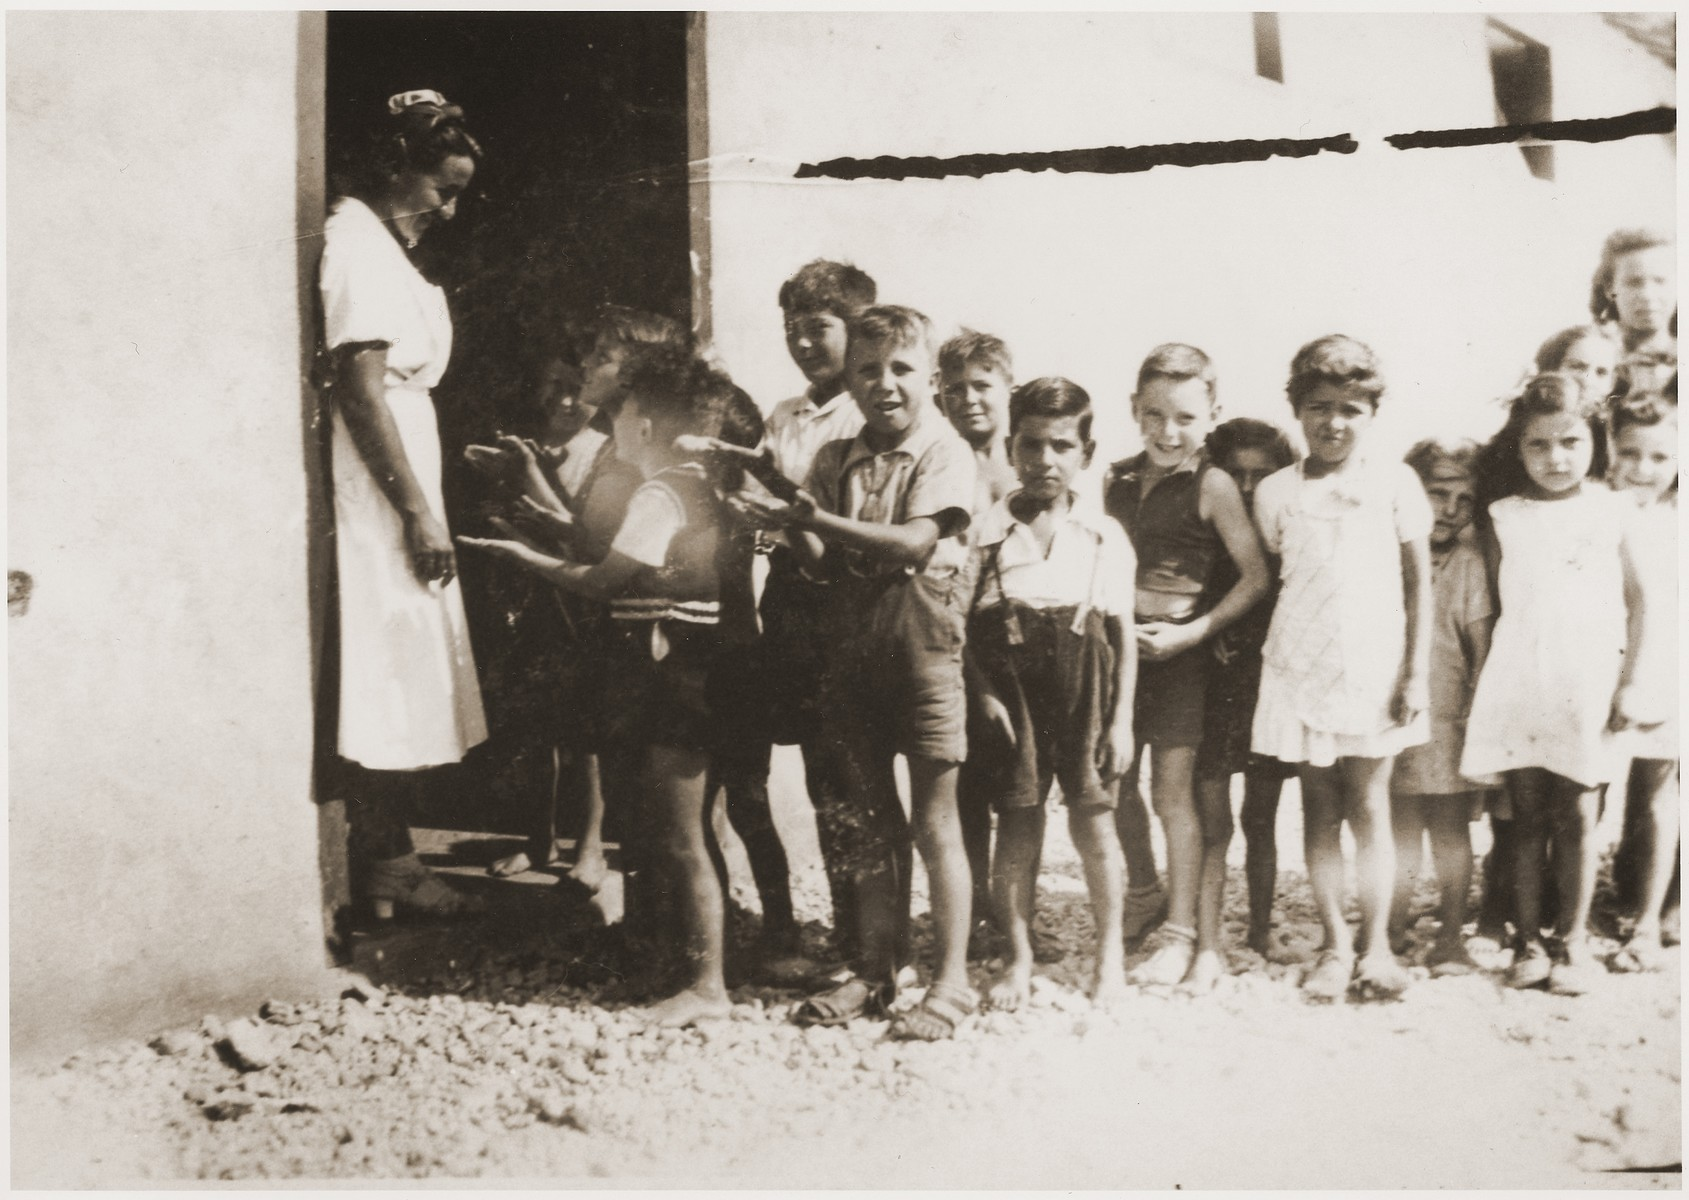 Children line up for food rations from Secours Suisse aux enfants.